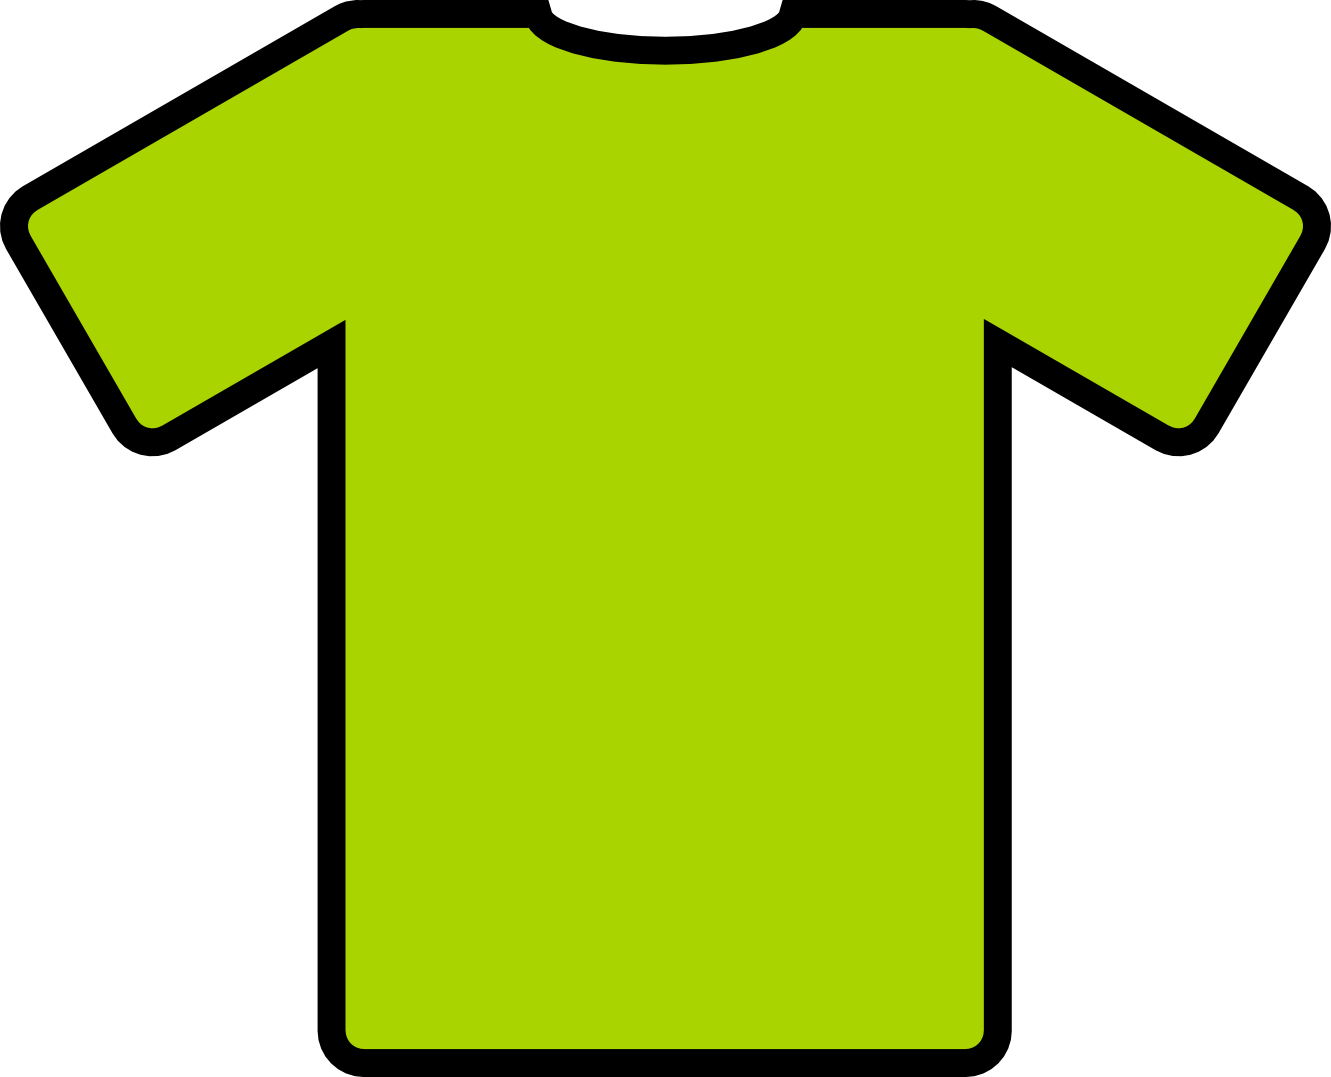 Kids shirt free download. Website clipart kid